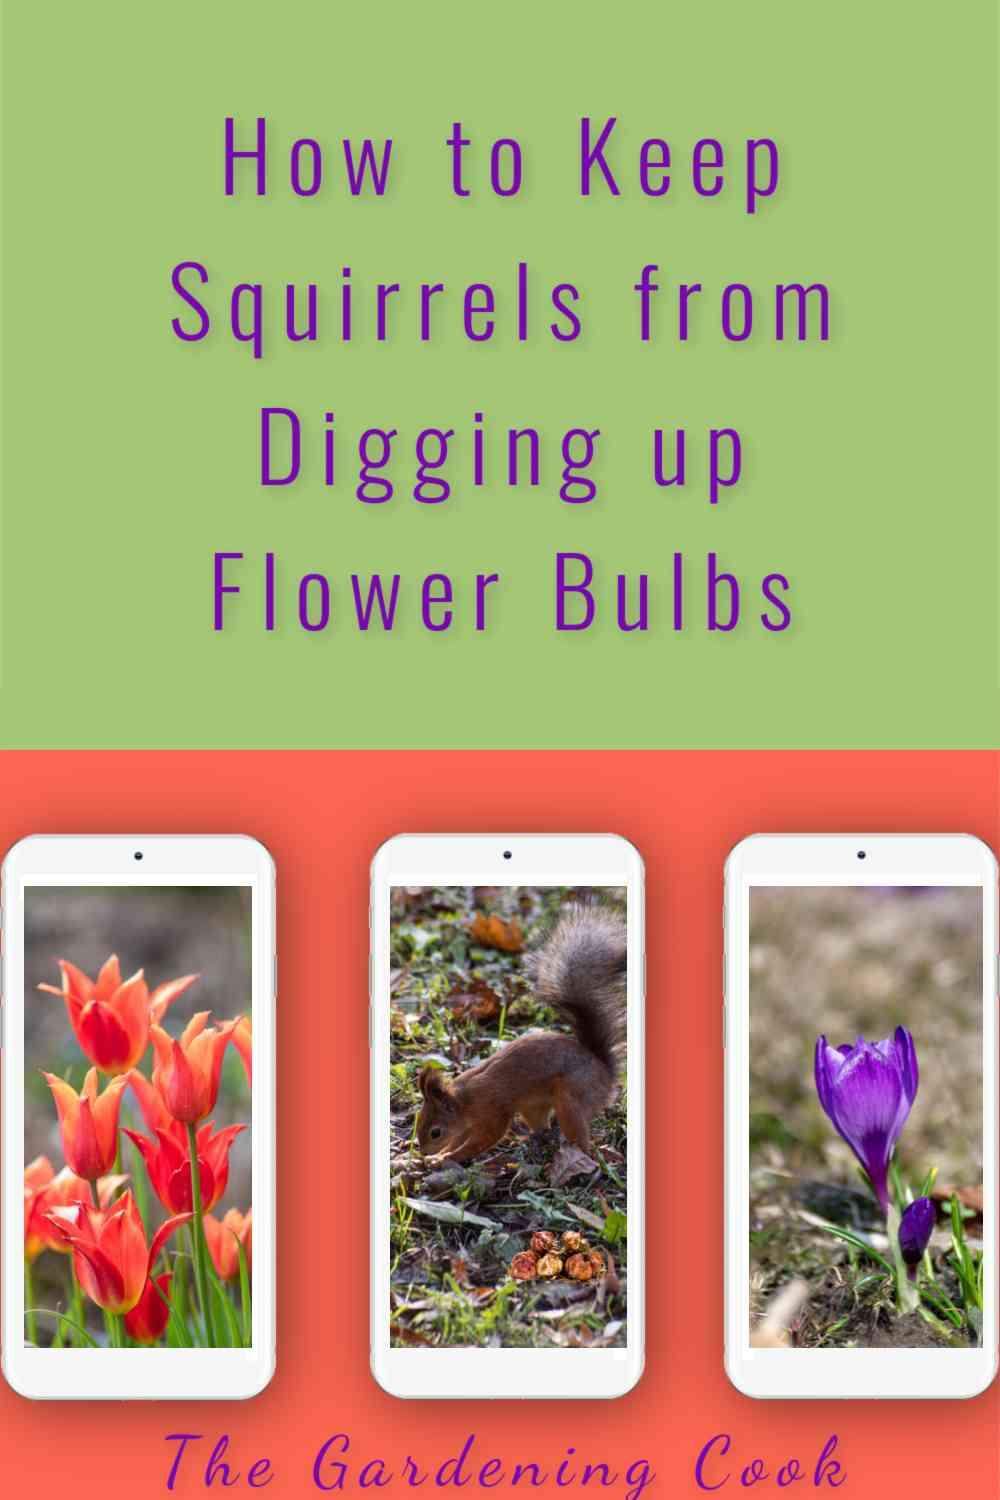 Phones with images of tulips, crocus and squirrel digging in garden with words How to Keep Squirrels from Digging up Flower Bulbs.